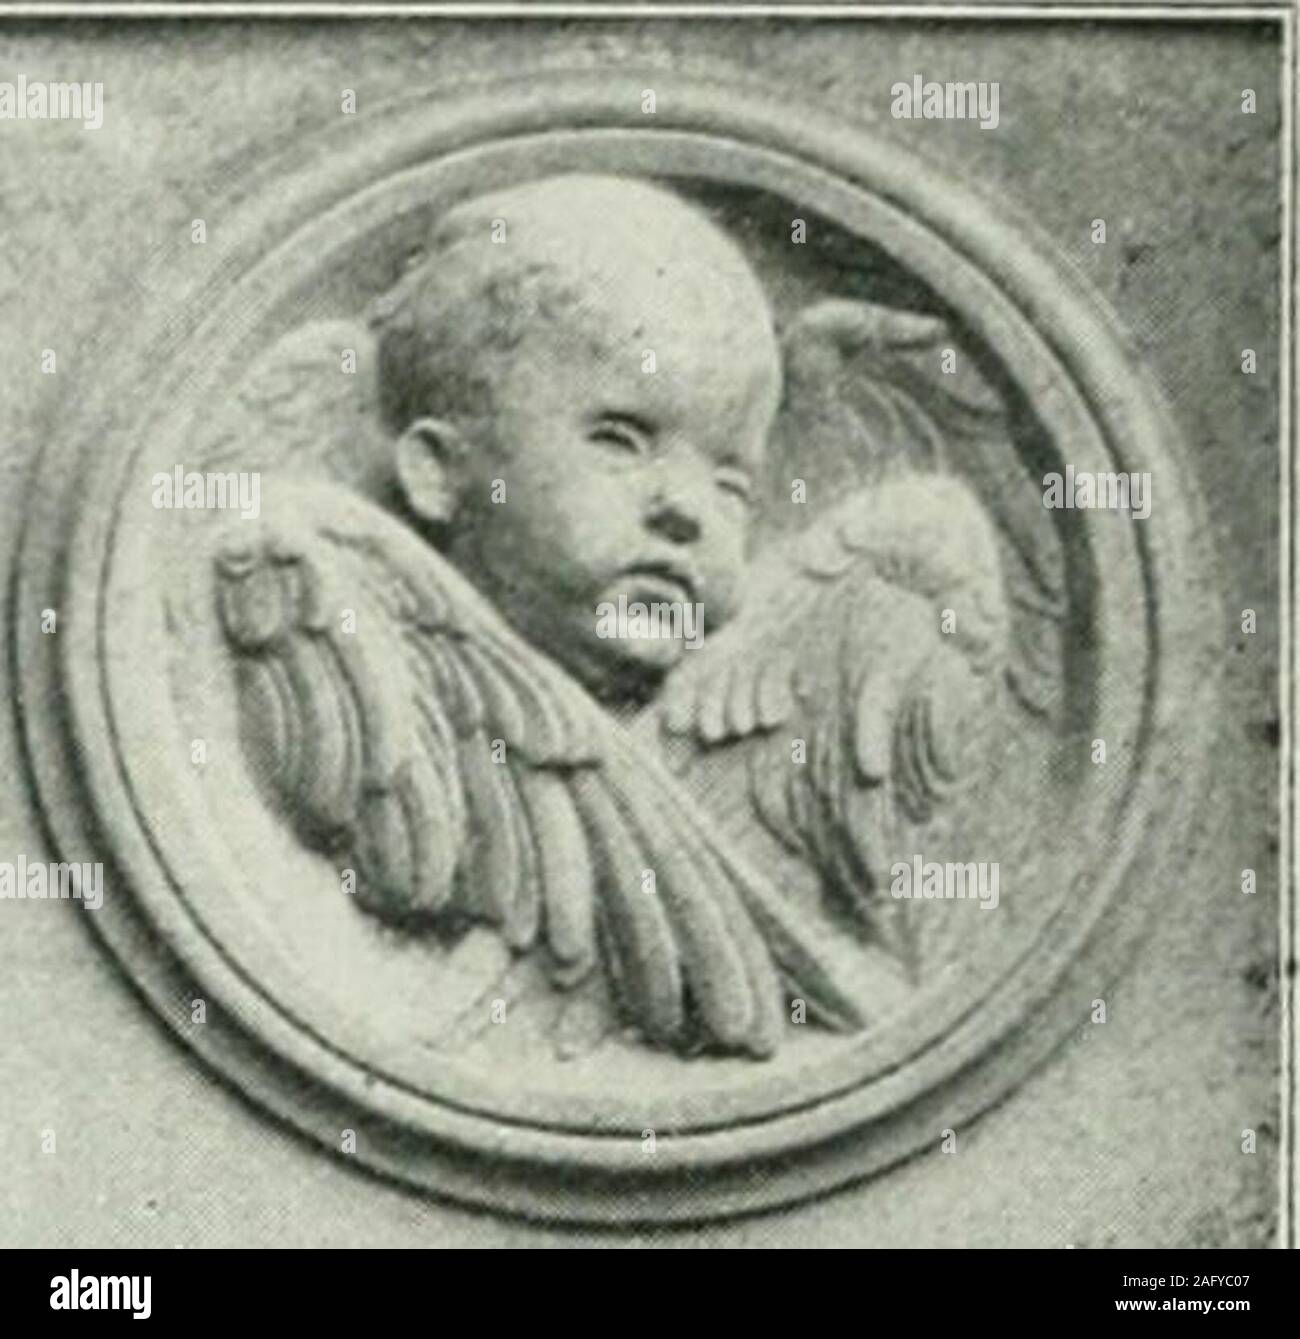 Dessin Ange Realiste giotto relief stock photos & giotto relief stock images - alamy